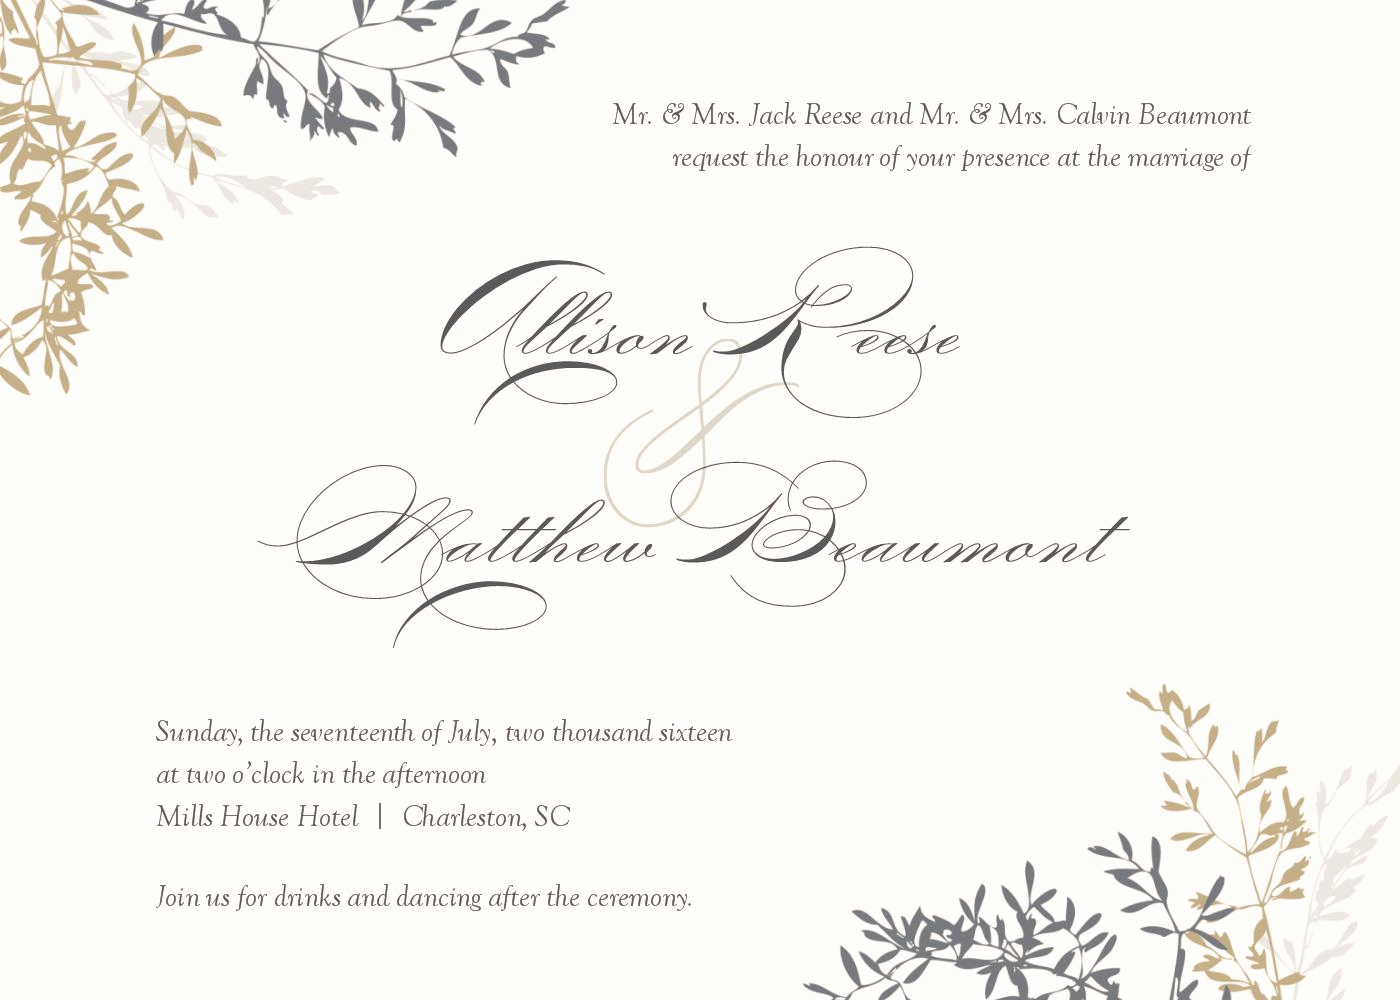 Wedding Invitation Design Templates Inspirational Wedding Invitation Wedding Invitations Template Superb